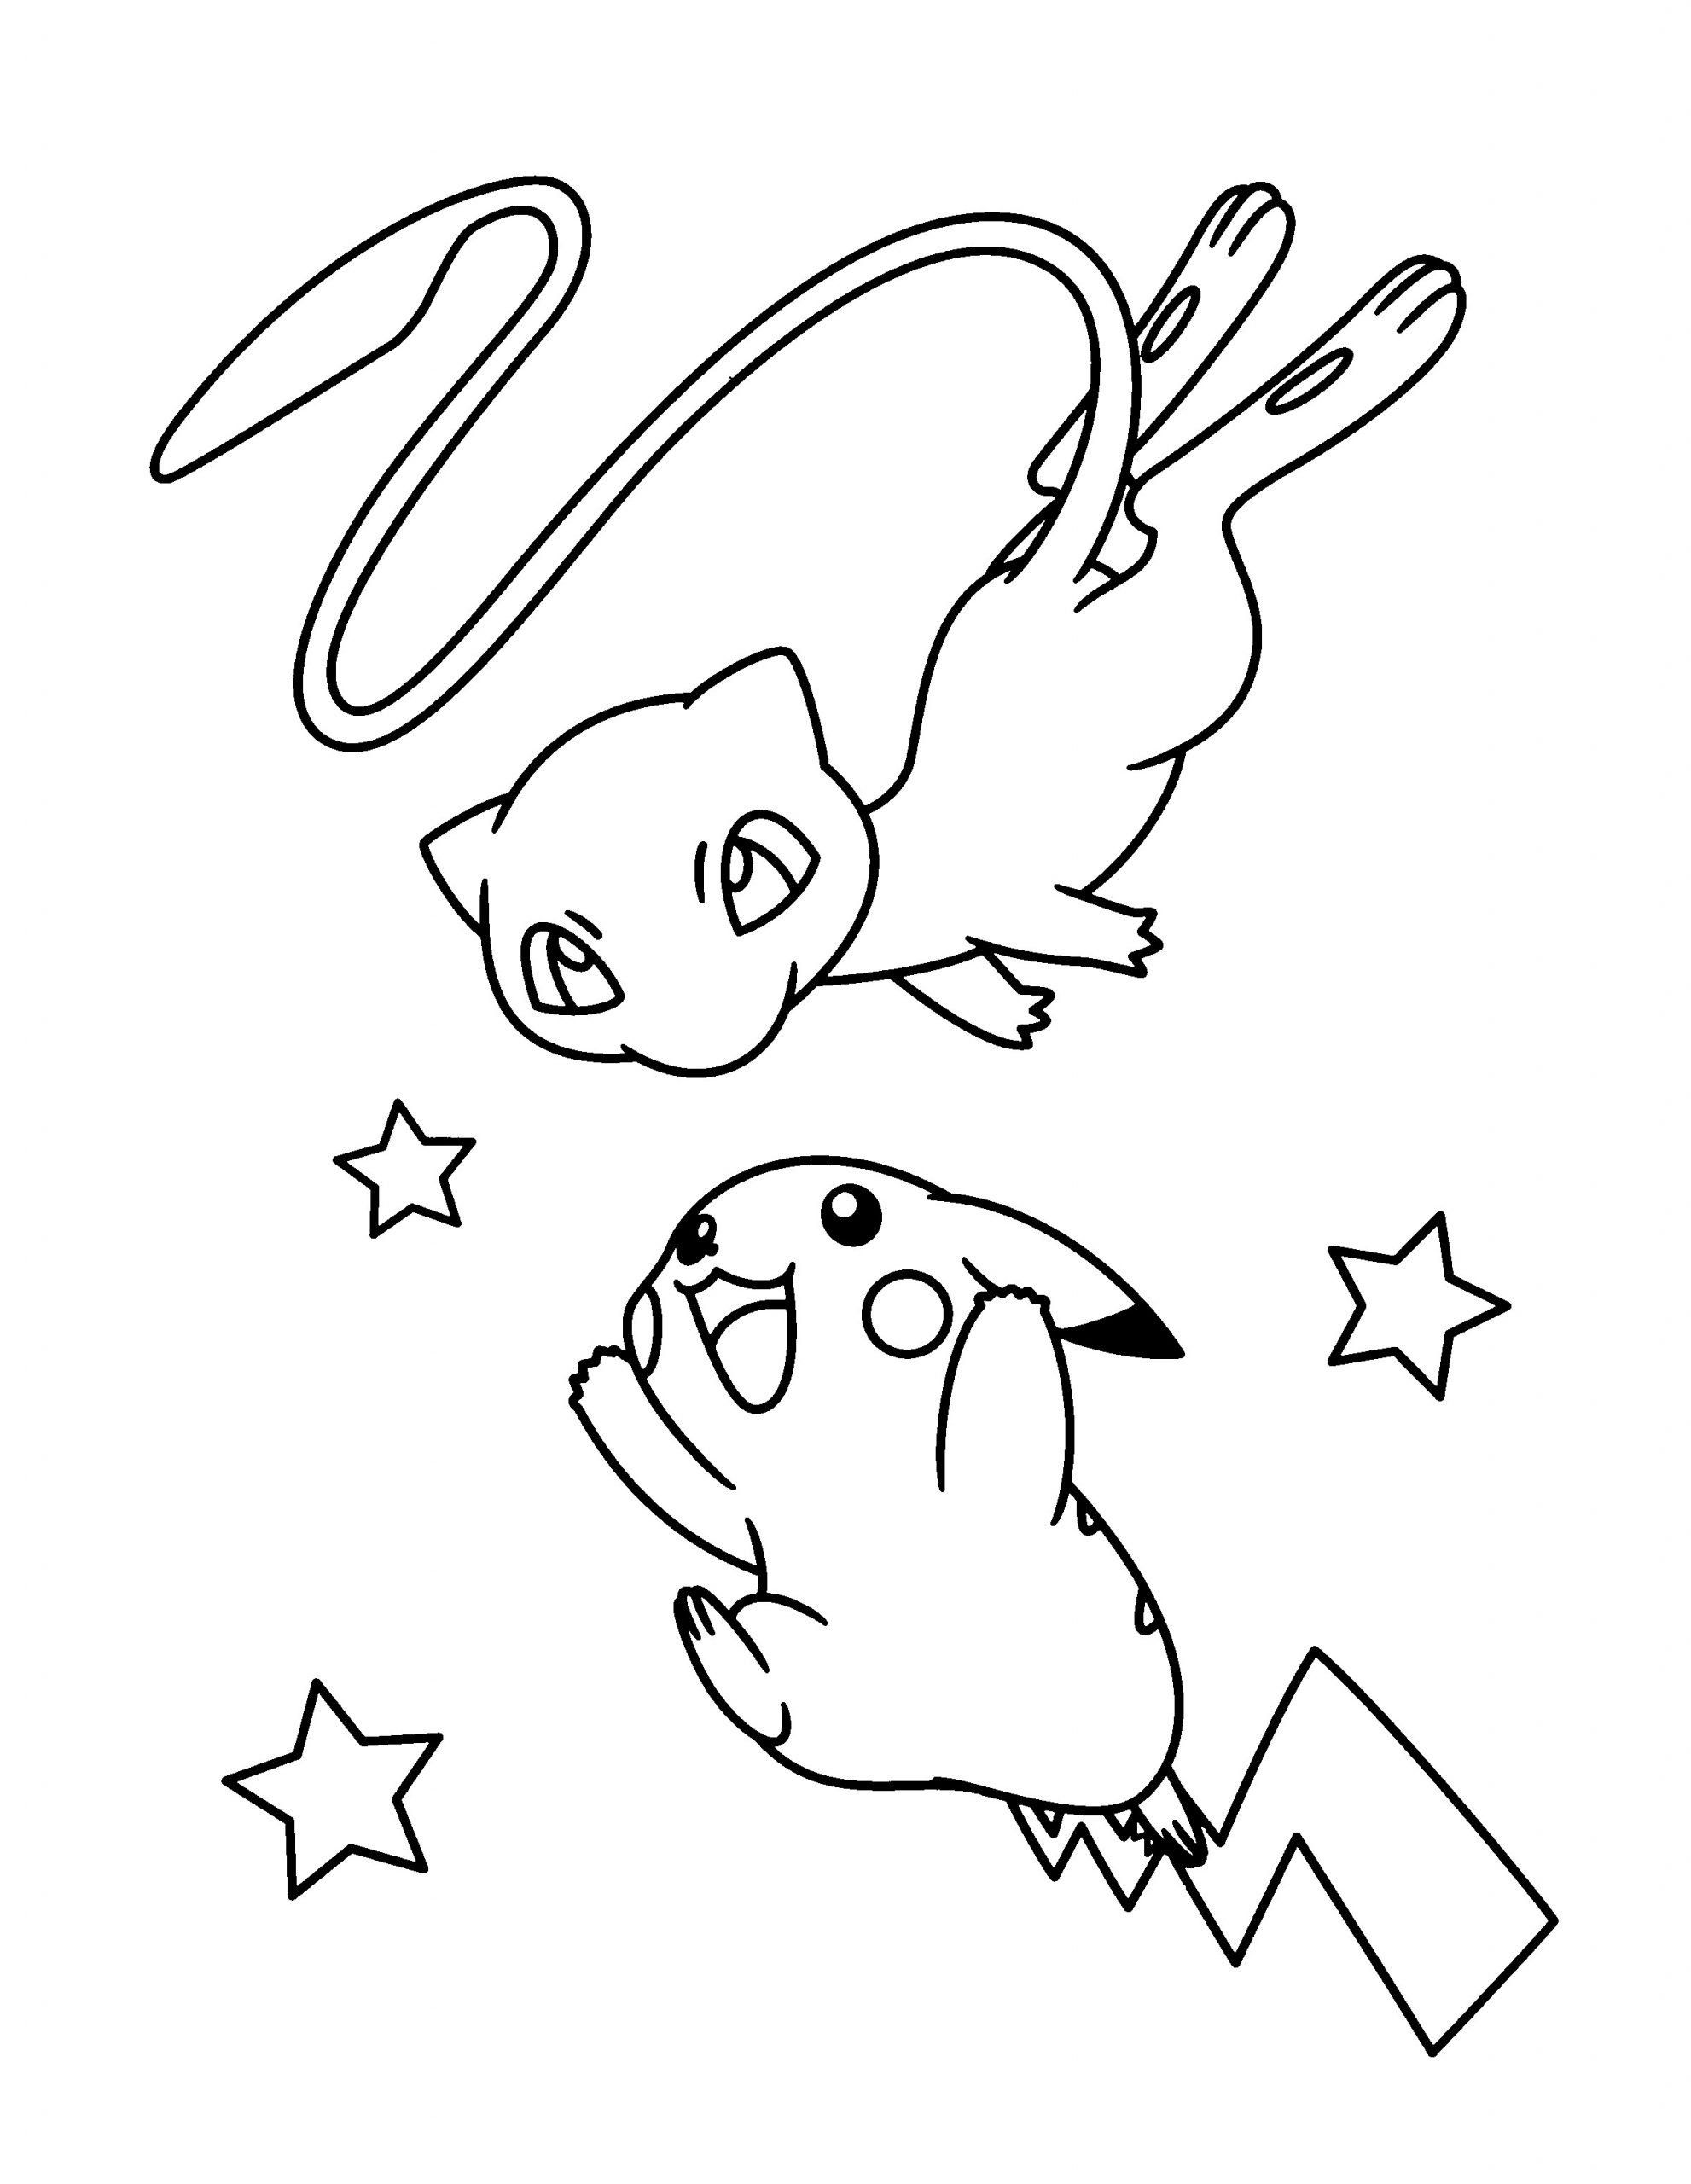 Cute Baby Pokemon Coloring Pages Cute Coloring Pages Pokemon In 2020 Pokemon Coloring Pages Pokemon Coloring Pikachu Coloring Page